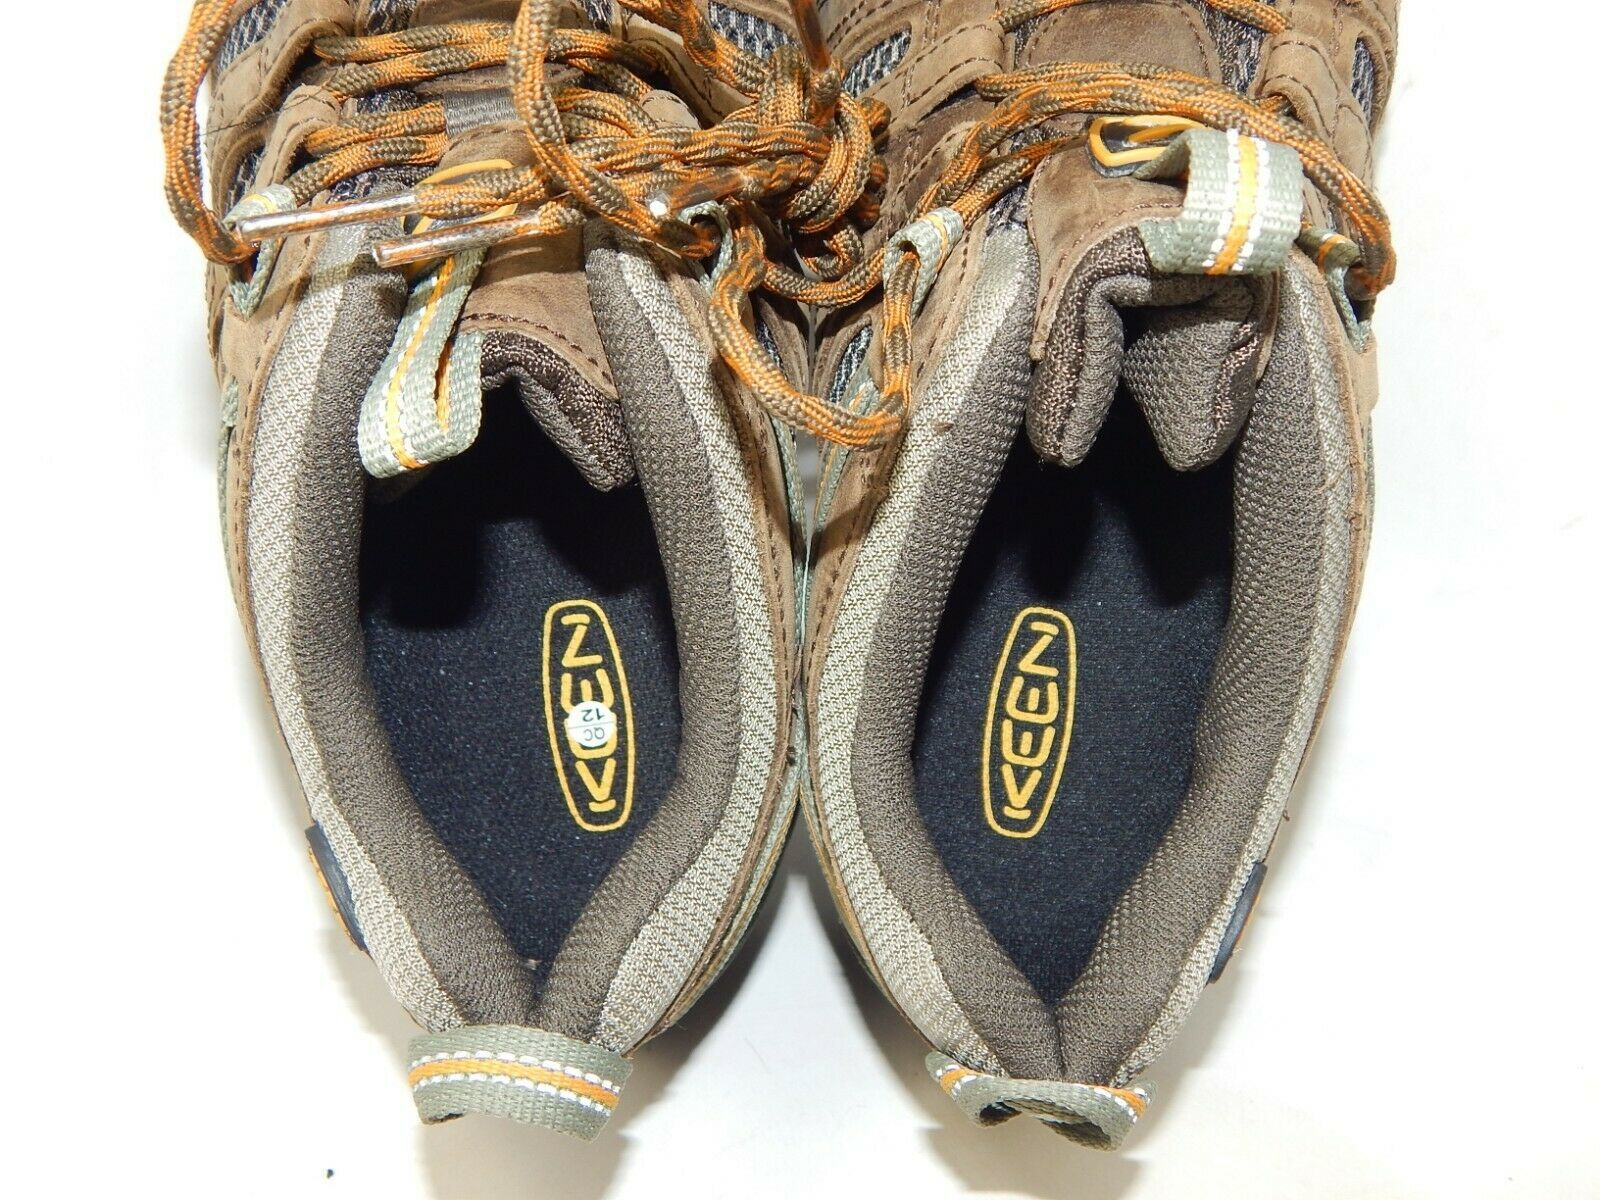 Keen Voyageur Low Top Size US 10.5 M (D) EU 44 Men's Trail Hiking Shoes Brown image 9